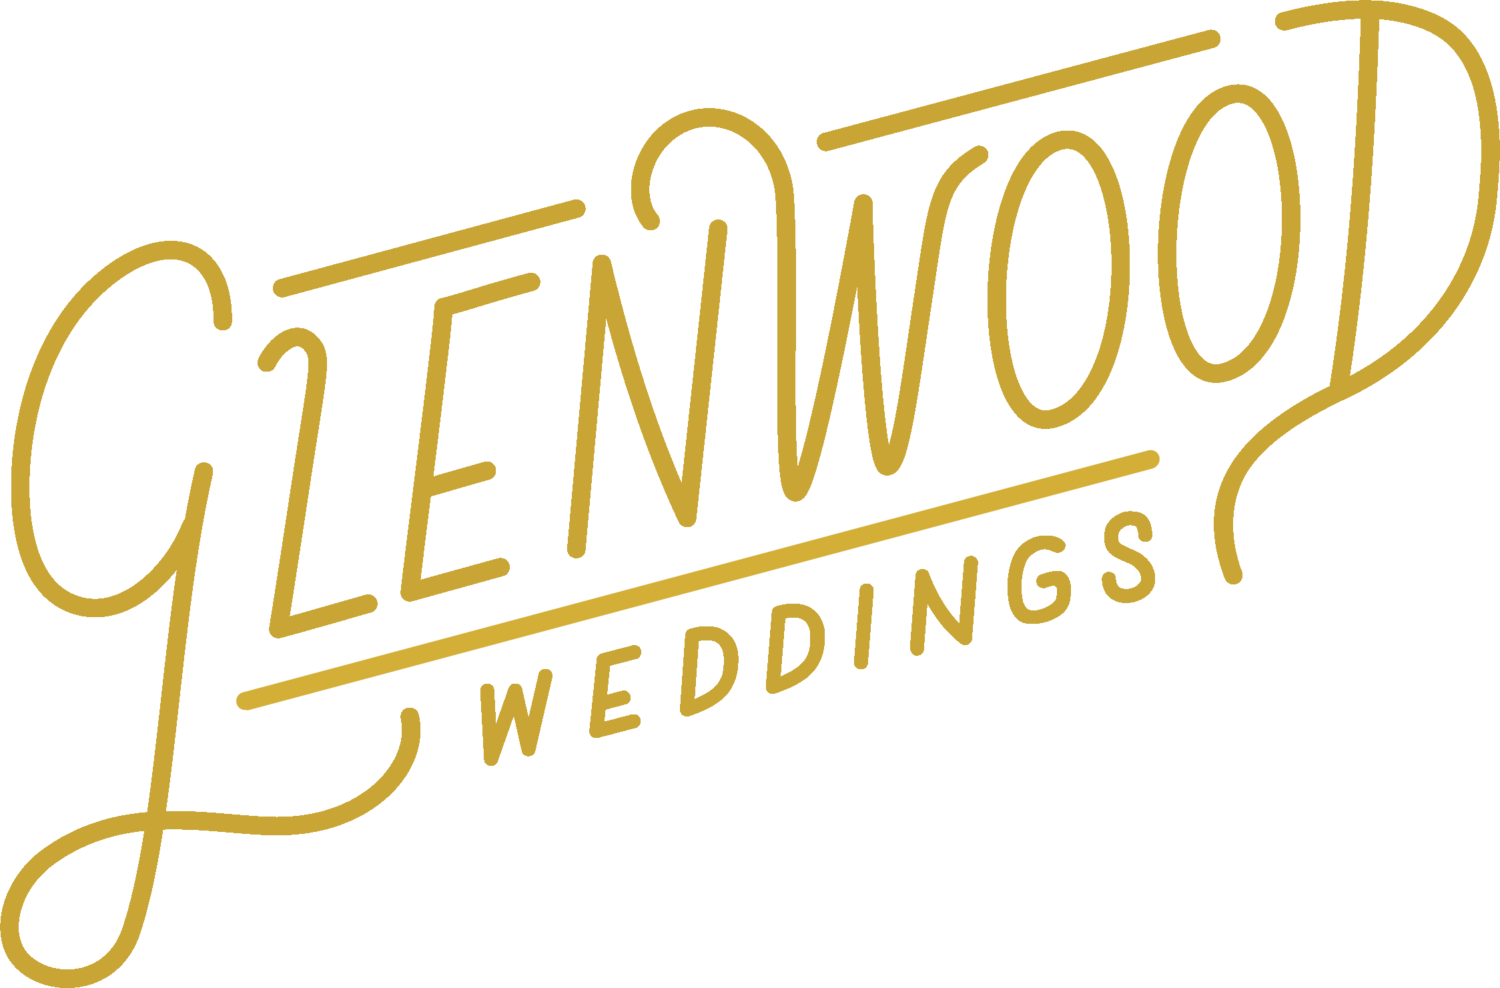 Glenwood Weddings: wedding videography & photography